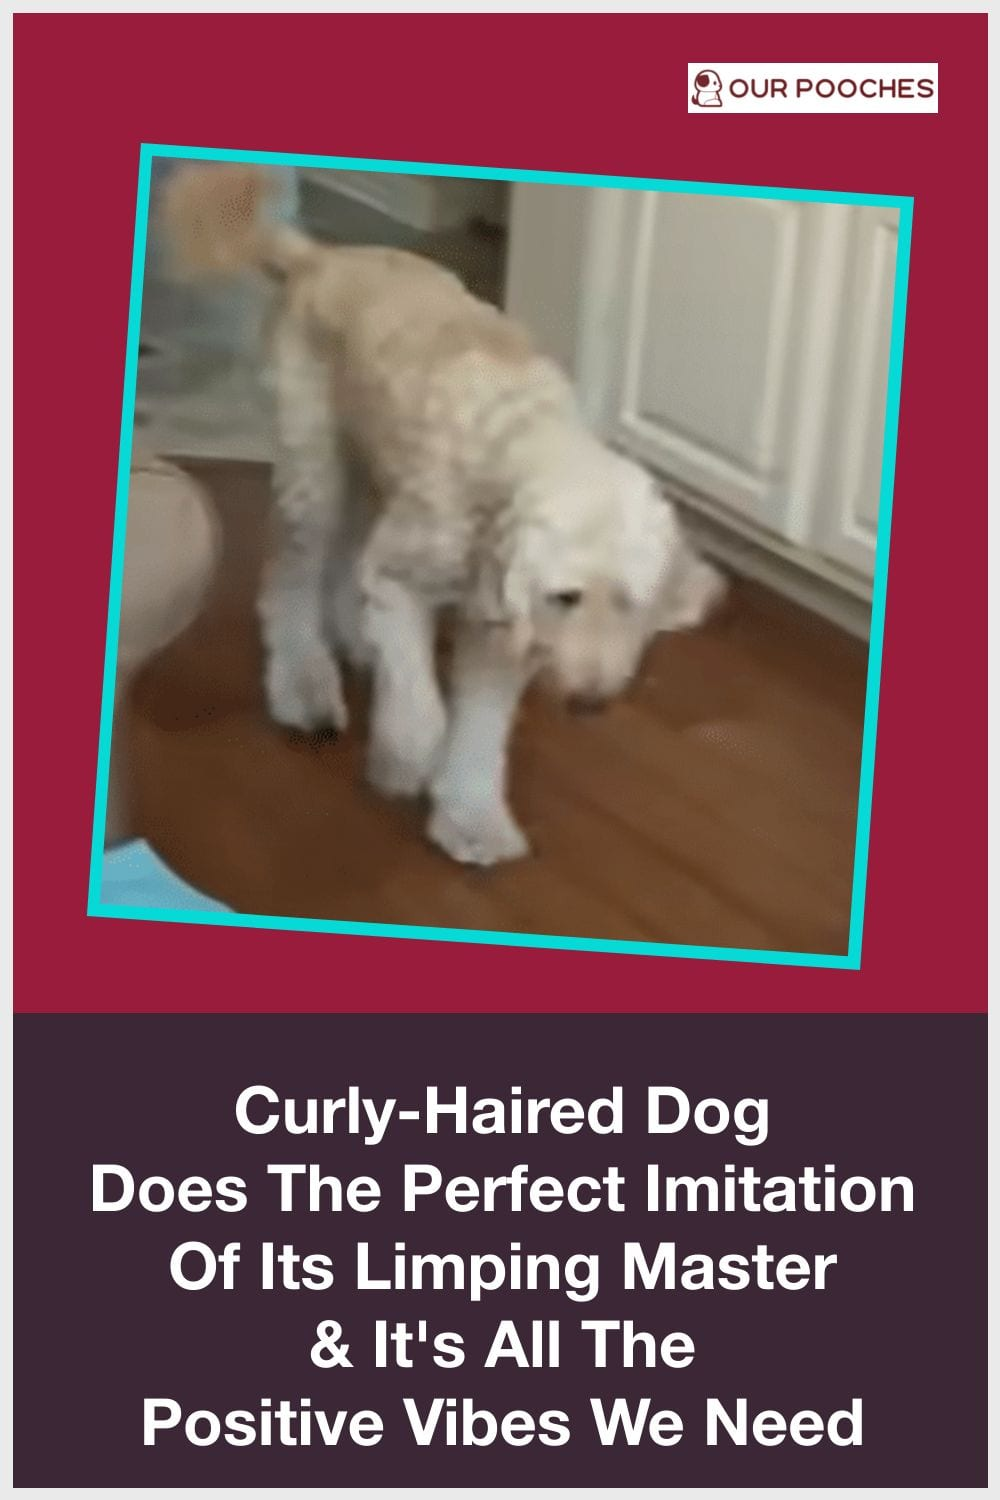 Curly-Haired Dog Does The Perfect Imitation